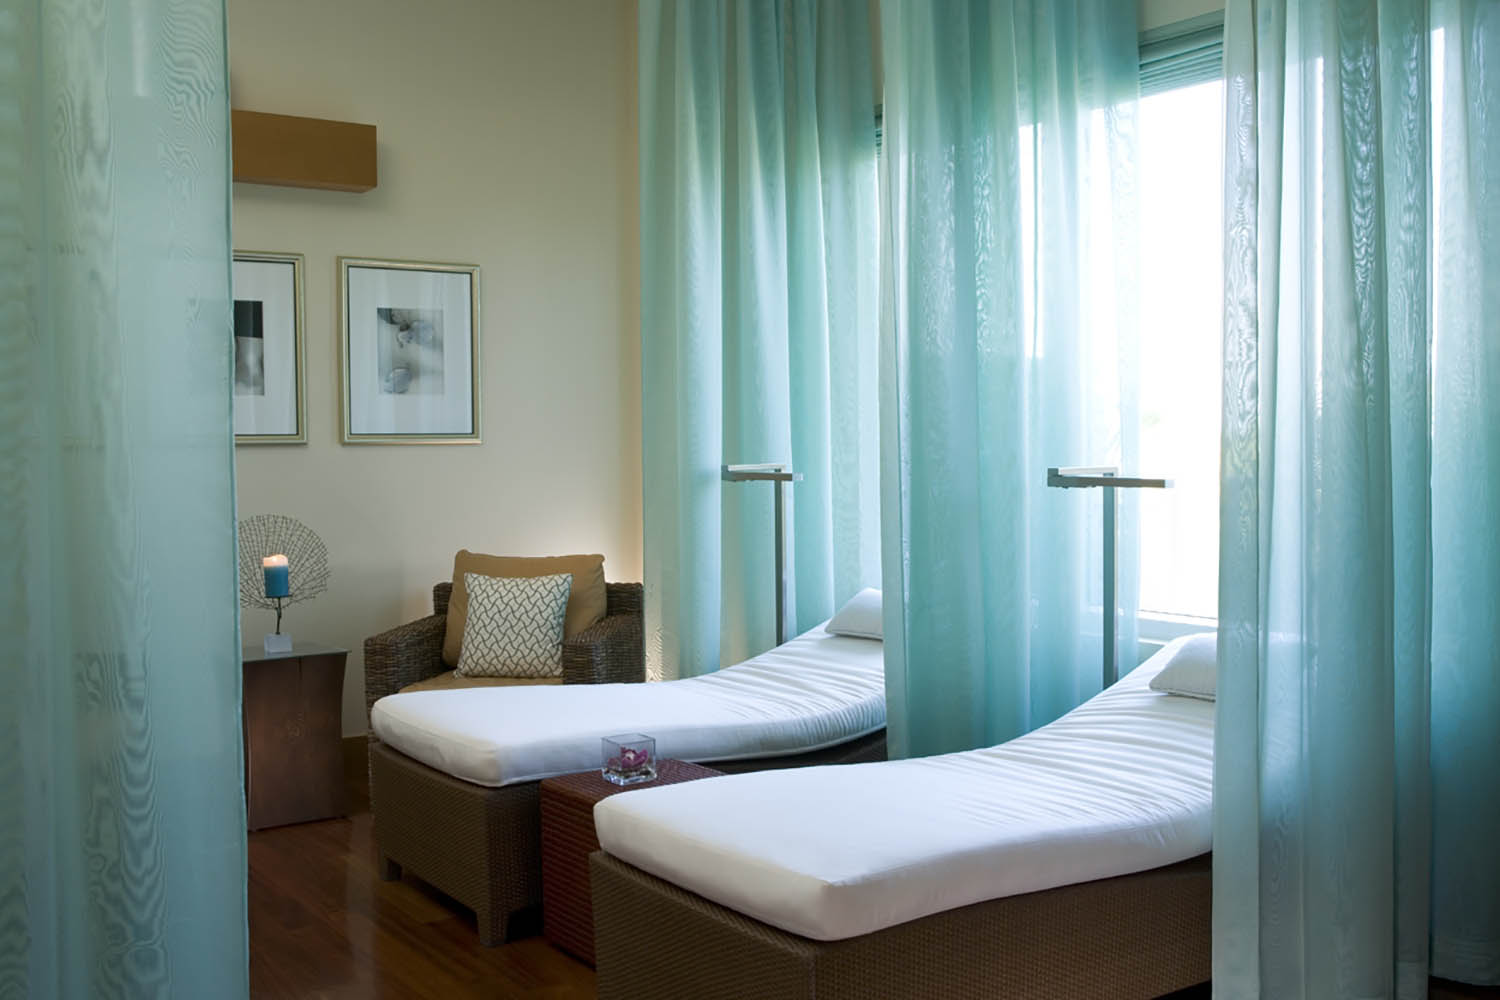 Guests can relax on spa beds at SiSpa before or after their treatments.